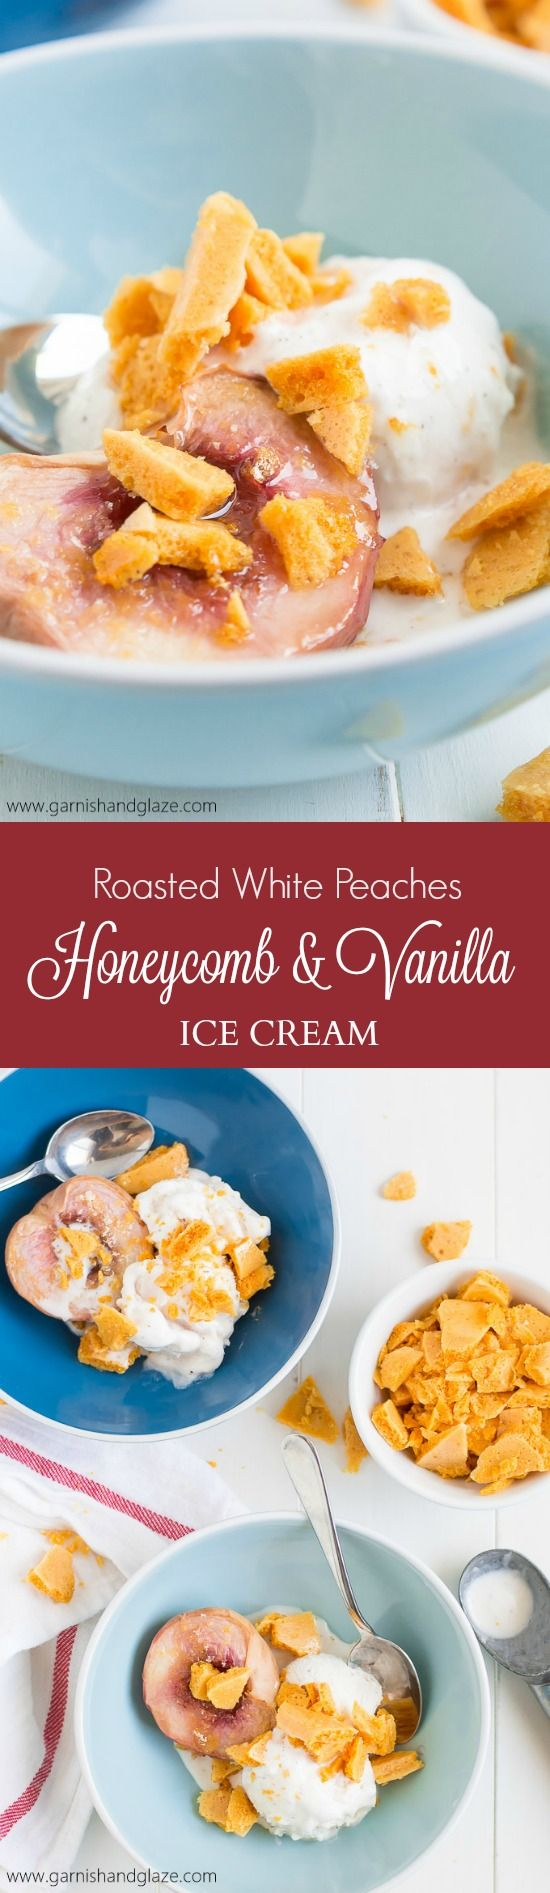 Enjoy the sweetness of summer with a bowl of Roasted White Peaches with Honeycomb and Vanilla Ice Cream! @Breyers #Breyers150 #ad